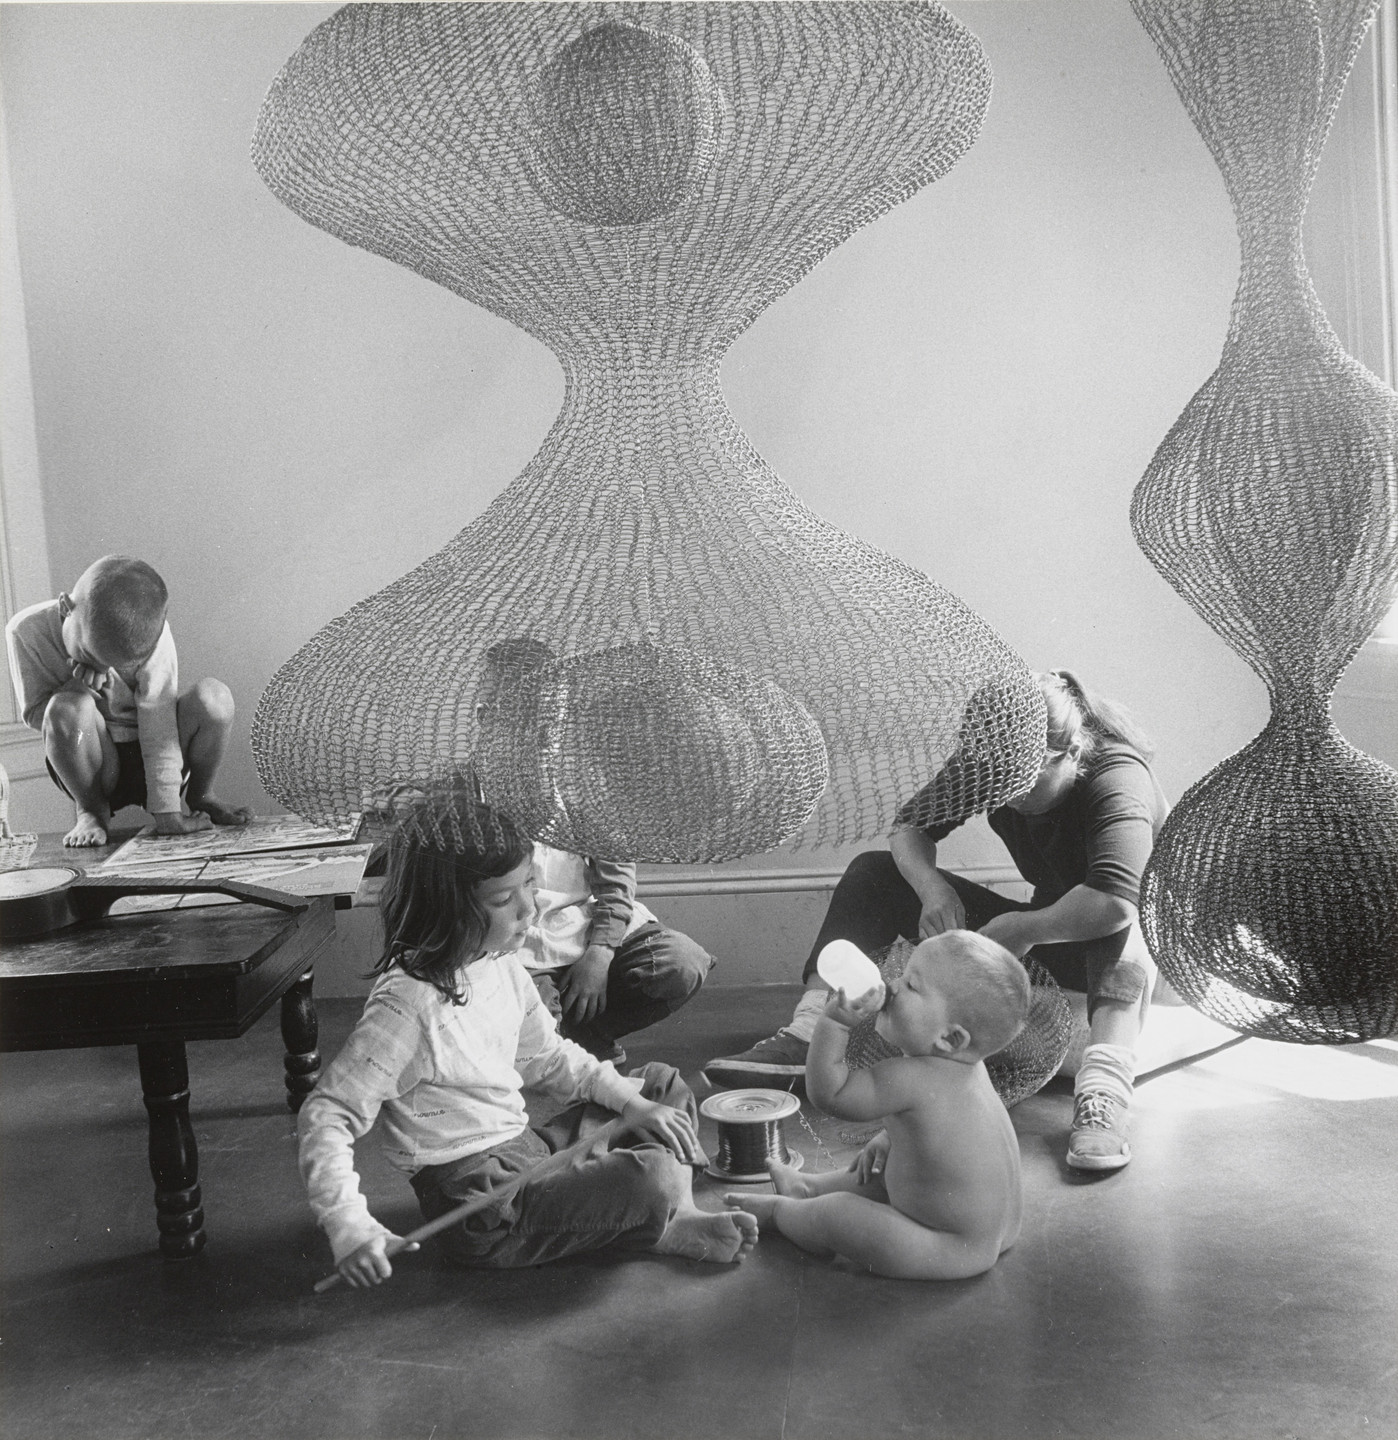 Imogen Cunningham. Ruth Asawa at Work with Children. 1957